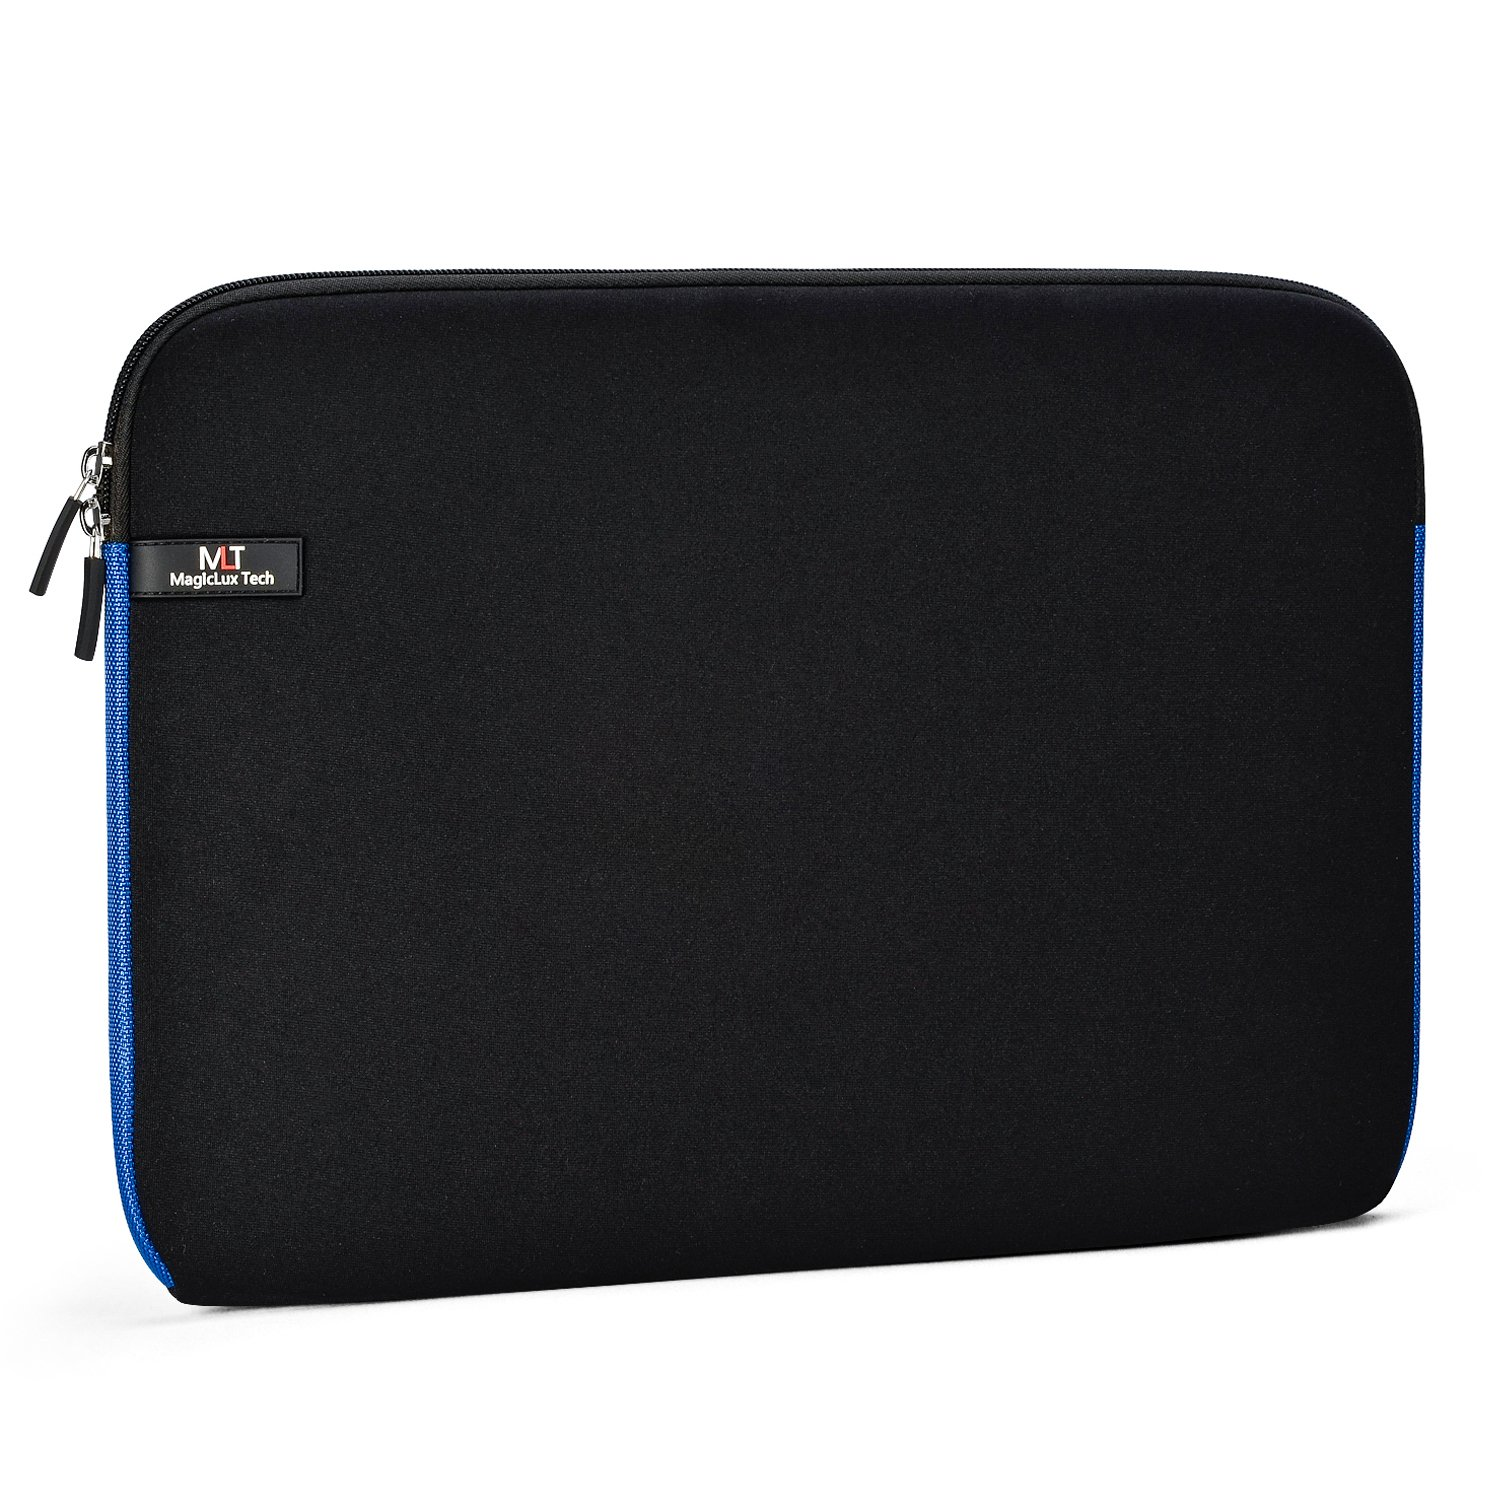 MagicLux Tech 13.3-Inch Laptop Sleeve